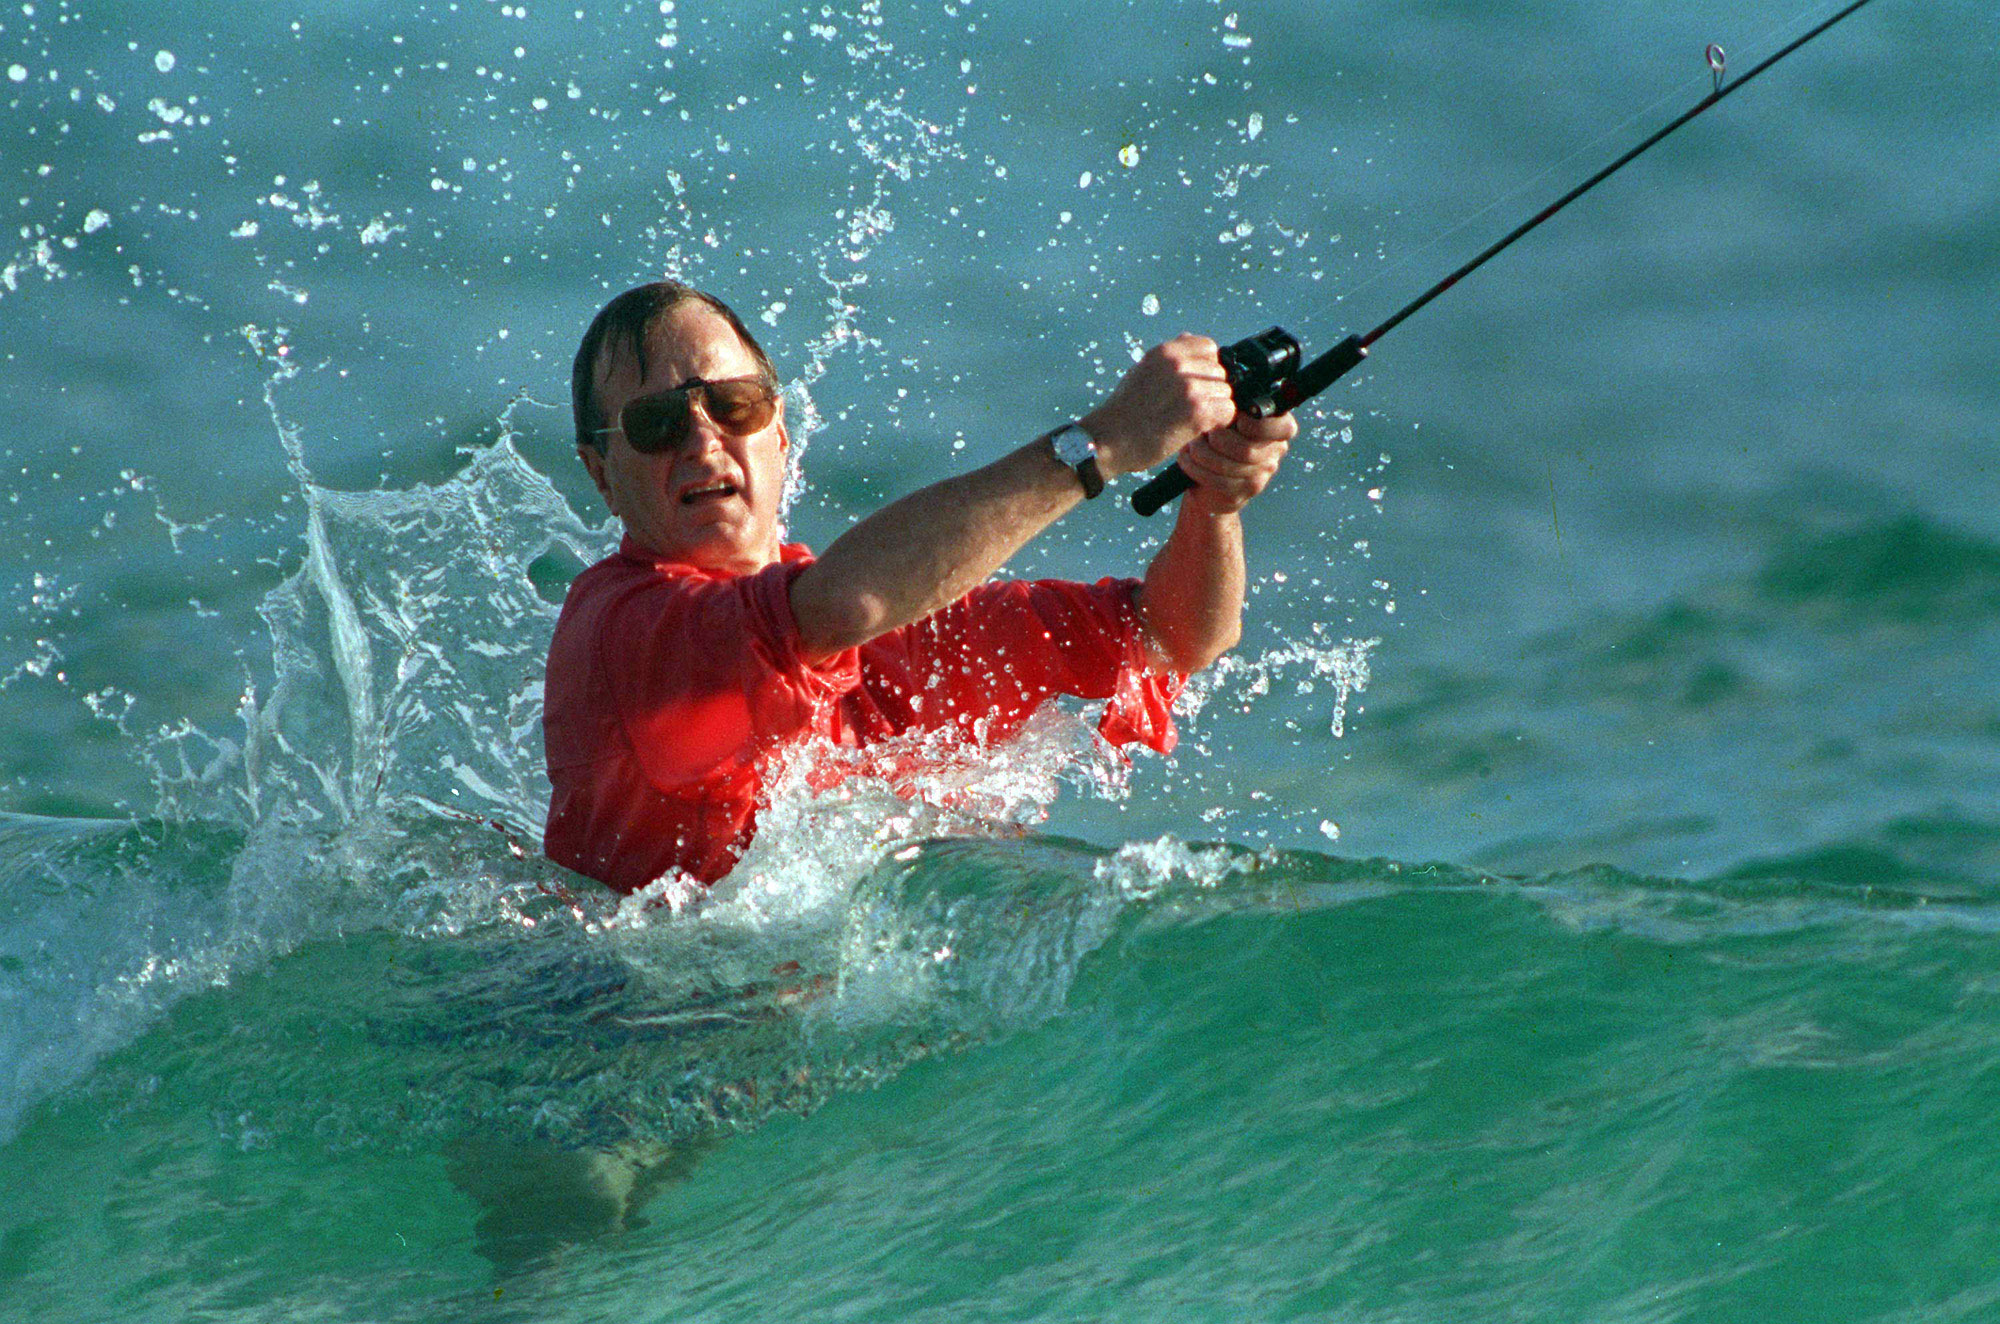 George H.W. Bush pescando en Florida. (AP Photo/Kathy Willens, File)